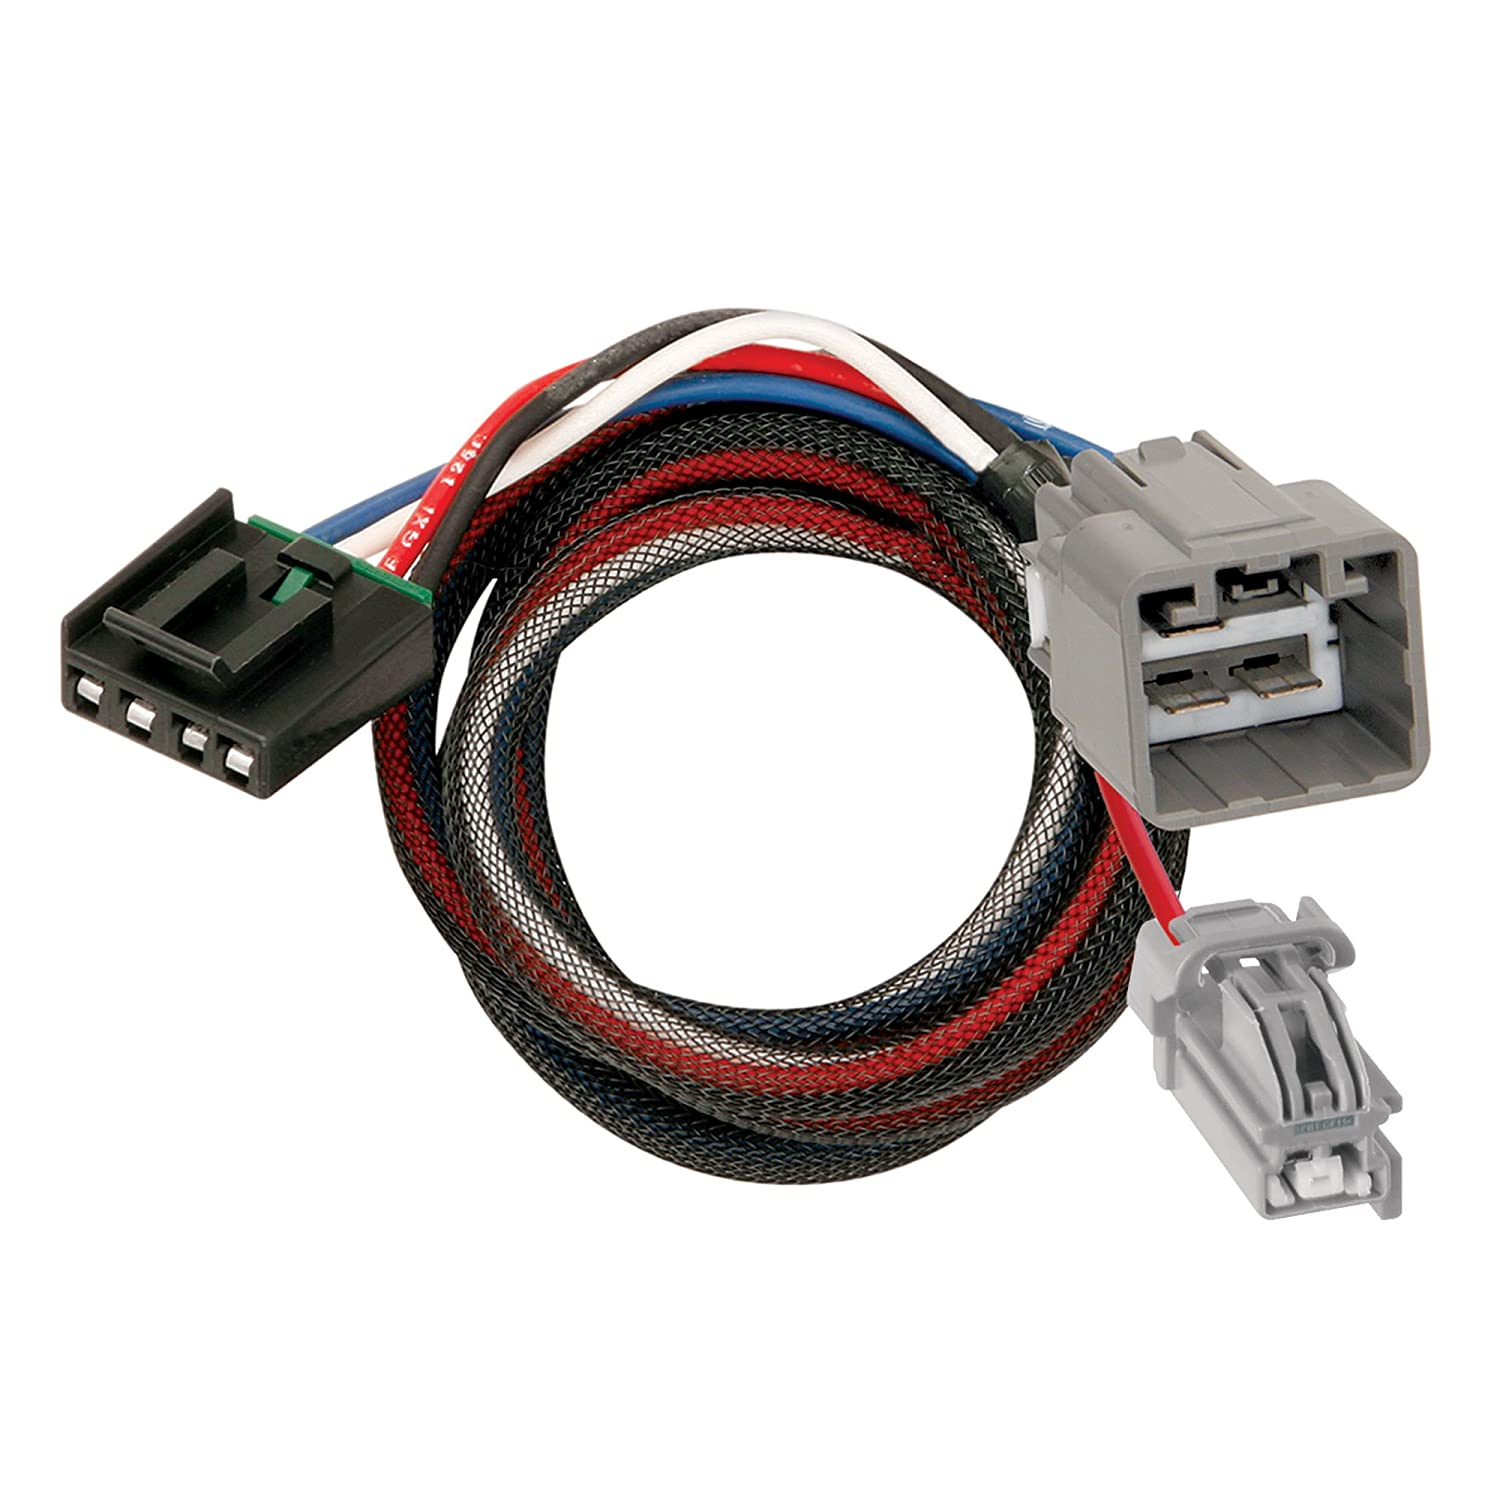 81y4xV0CXkL._SL1500_ amazon com reese towpower 8507500 brake control wiring harness curt wiring harness 55542 at readyjetset.co